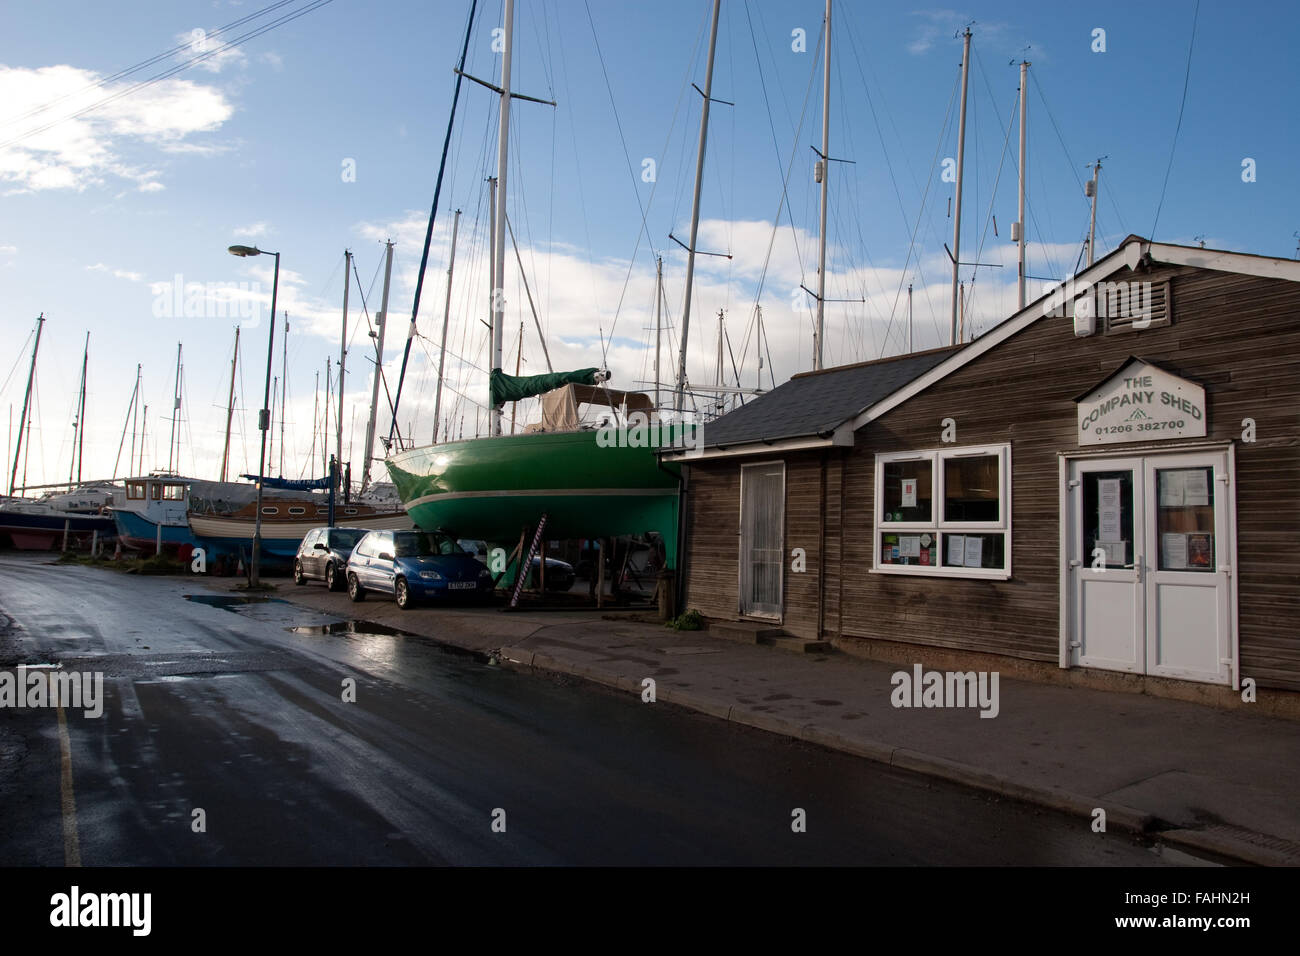 The Company Shed, famous seafood eating place at West Mersea, Mersea Island, Essex - Stock Image